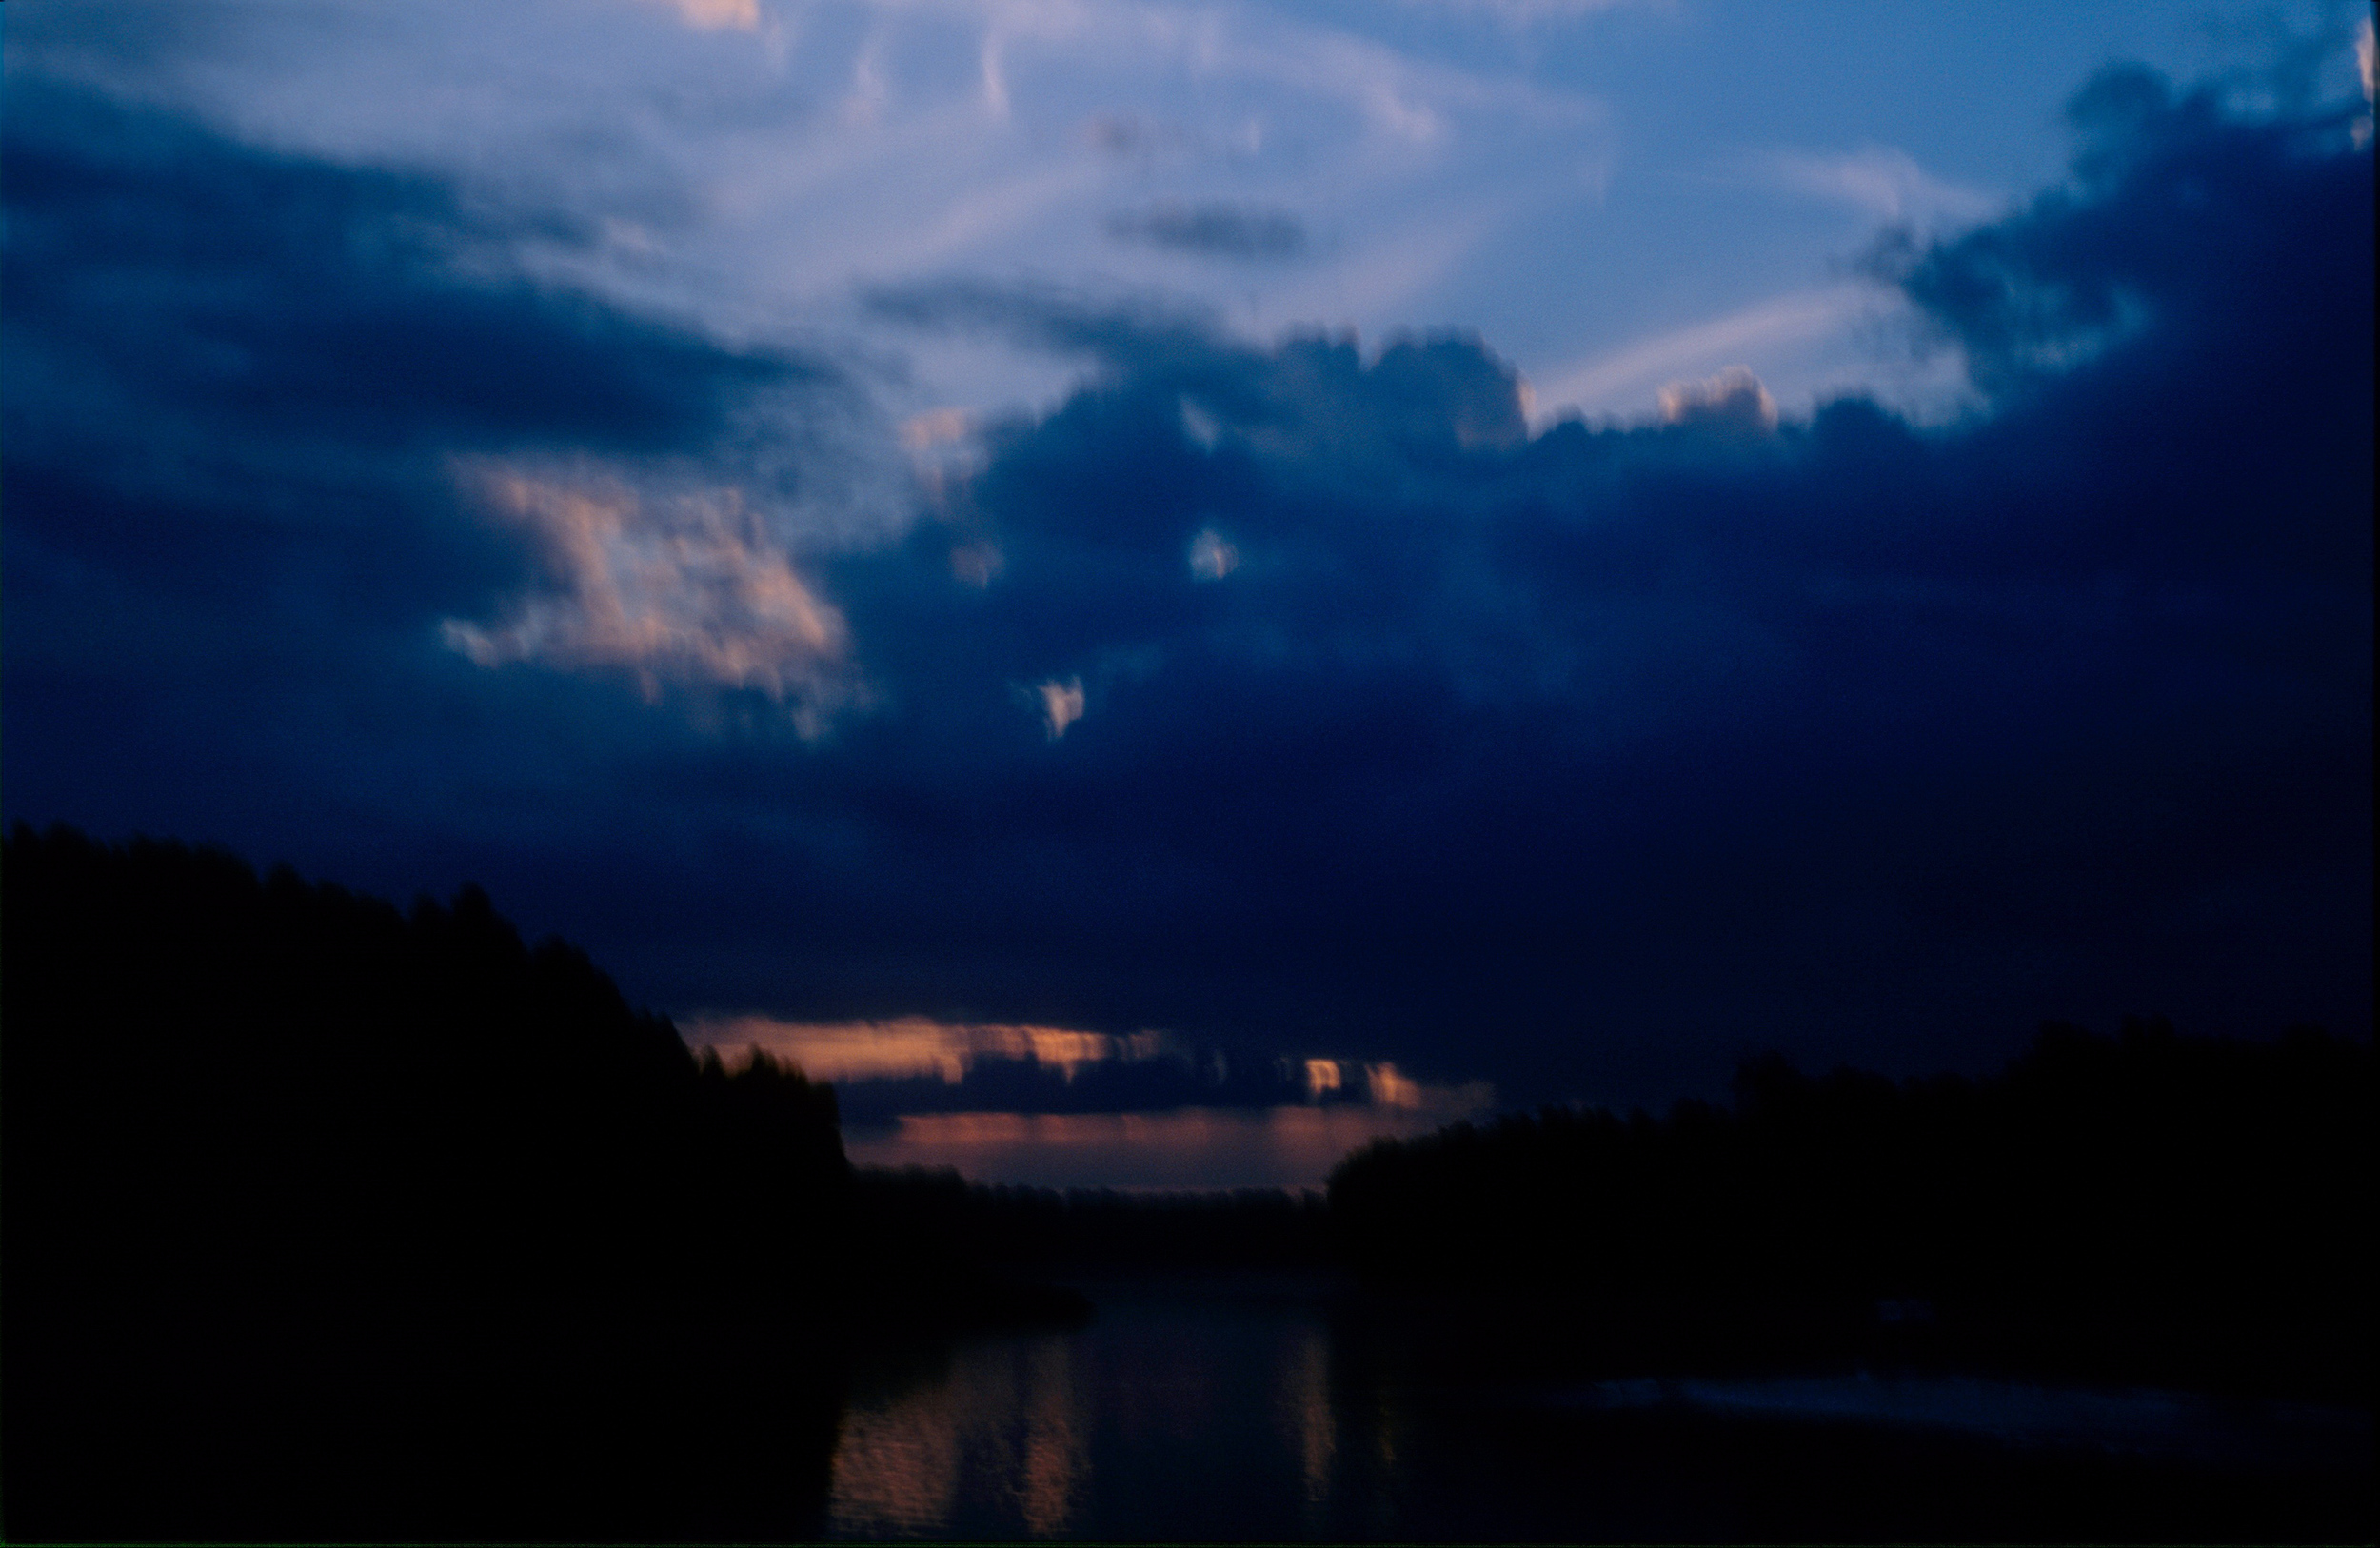 Atchafalaya Basin Twilight Burning .jpg